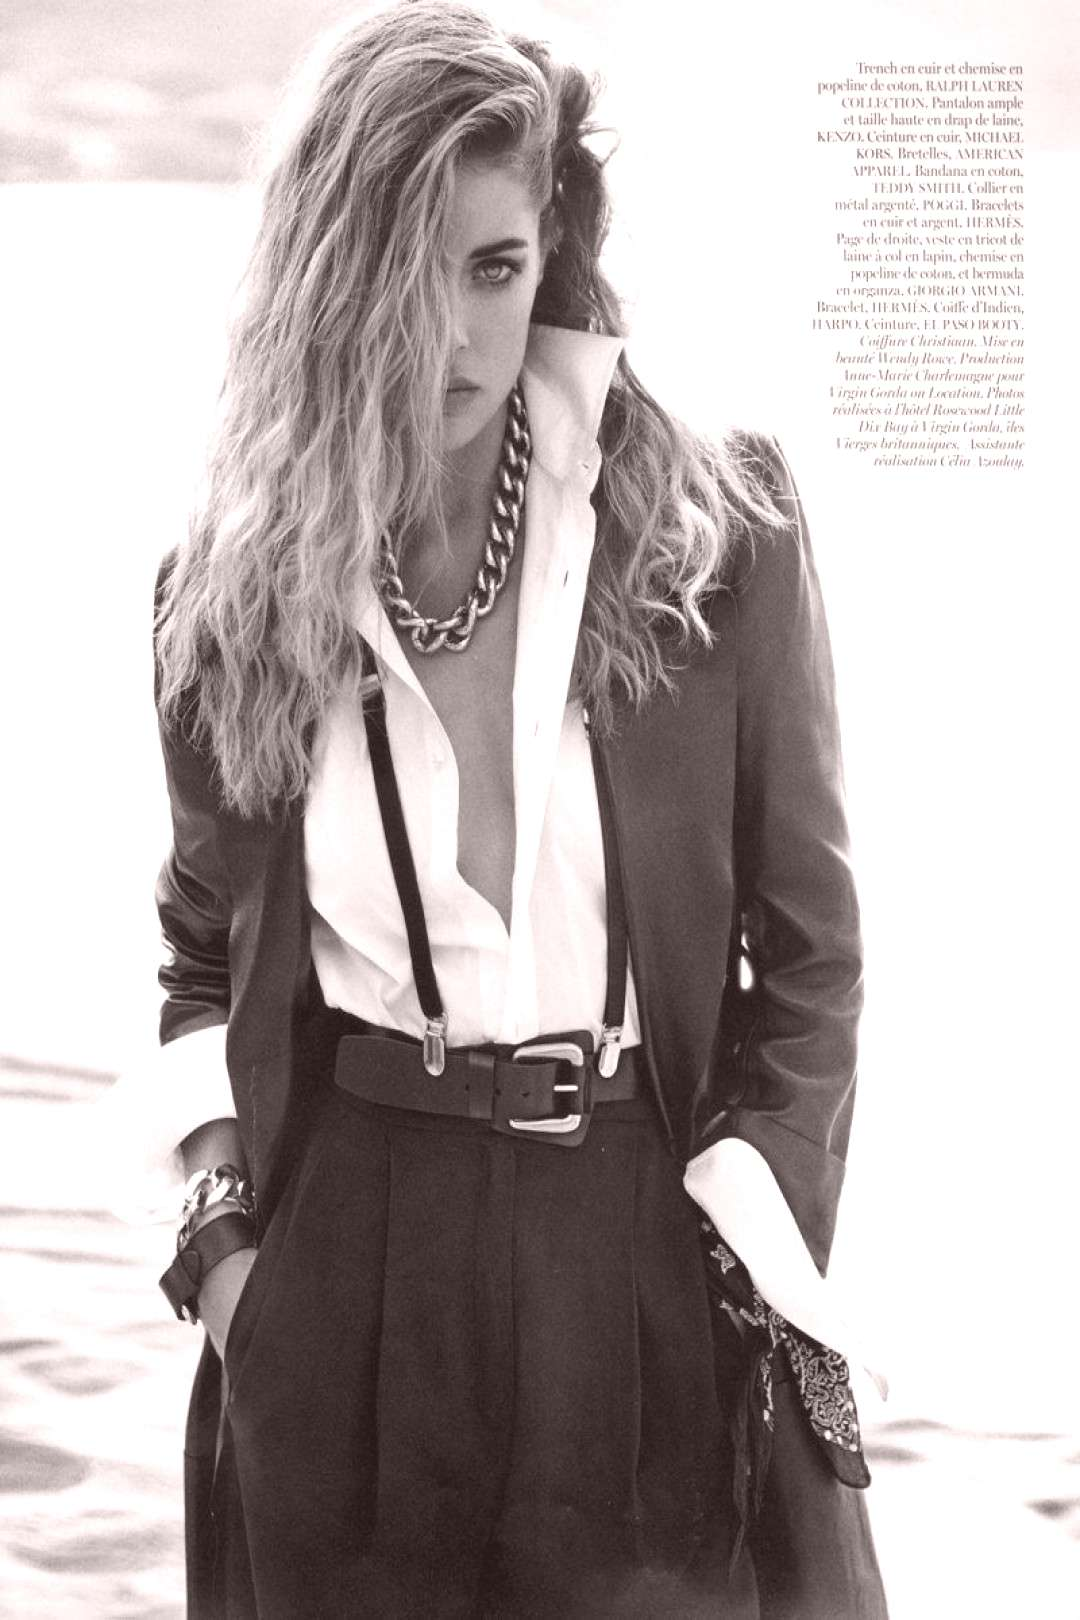 Womens Suits Editorial + Suits Editorial Women womens suits editorial   suits editorial women + wom